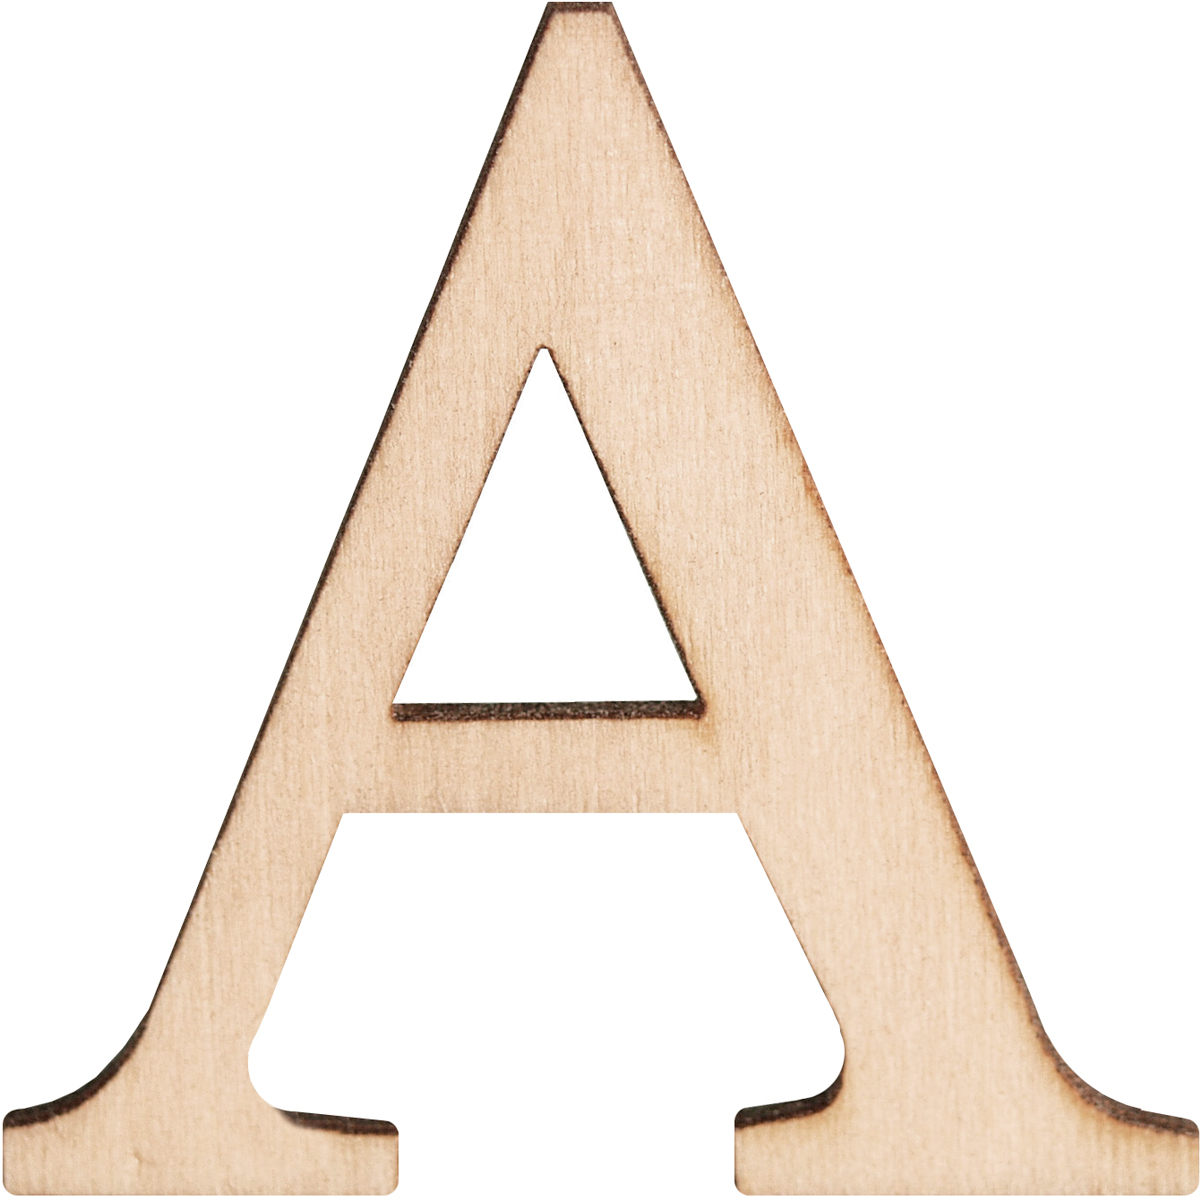 Walnut Hollow Wood Letters and Numbers, 1.5-Inch, A, 2 Per Package Multi-Colored